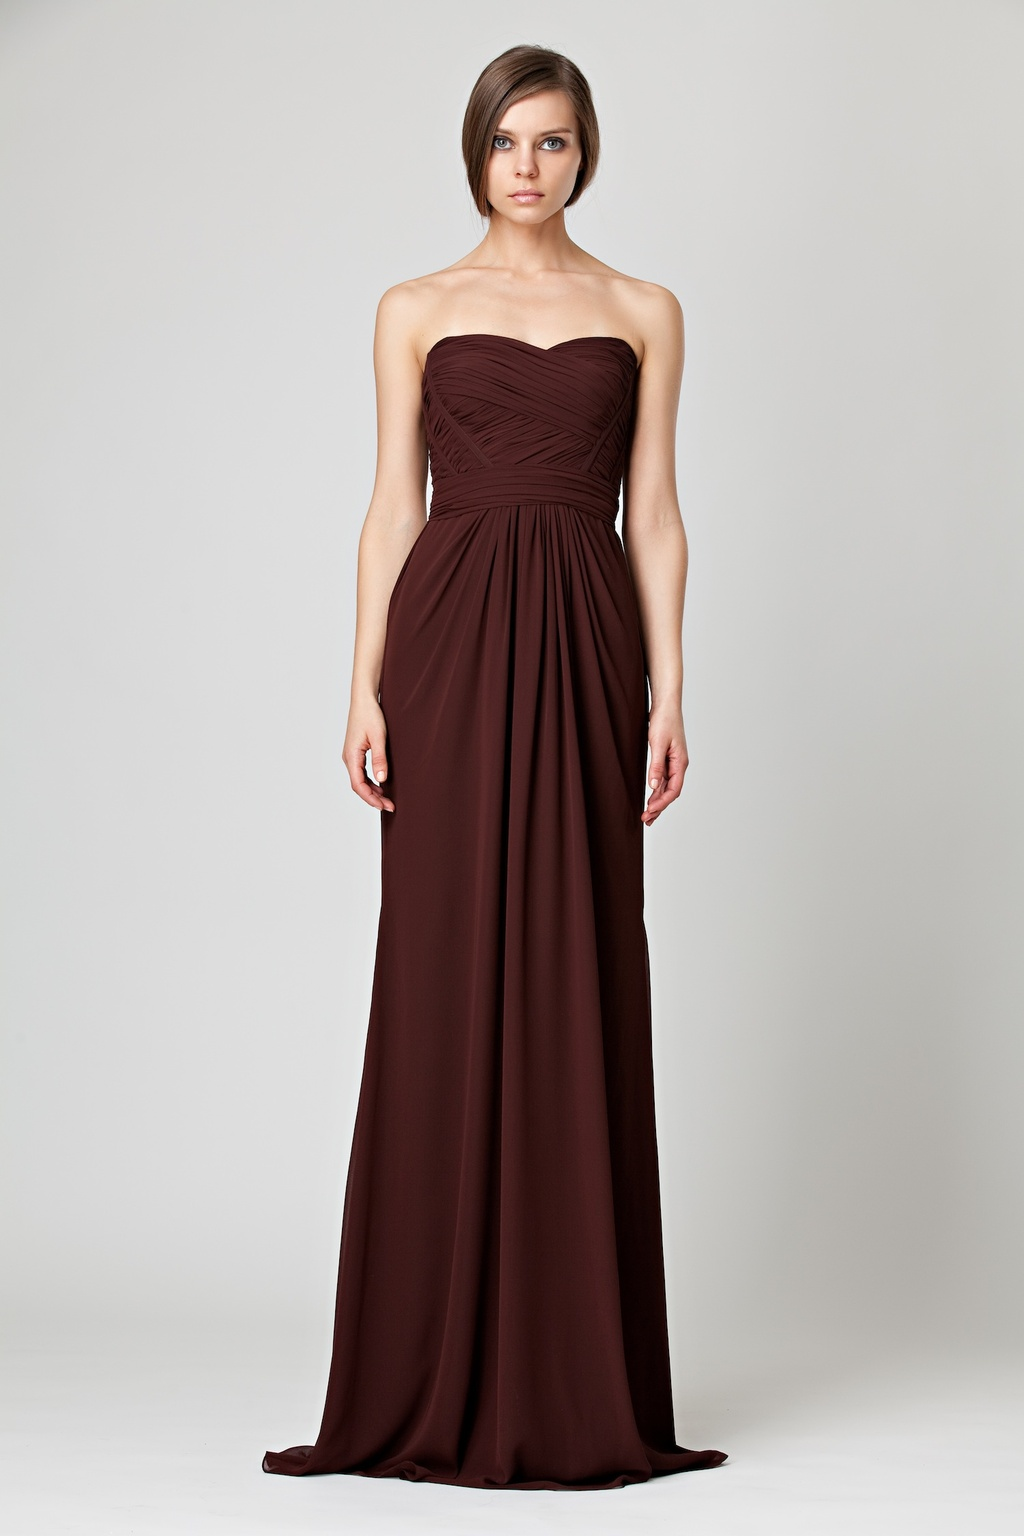 Maroon_floor_length_bridesmaids_dress_from_monique_lhuillier.full